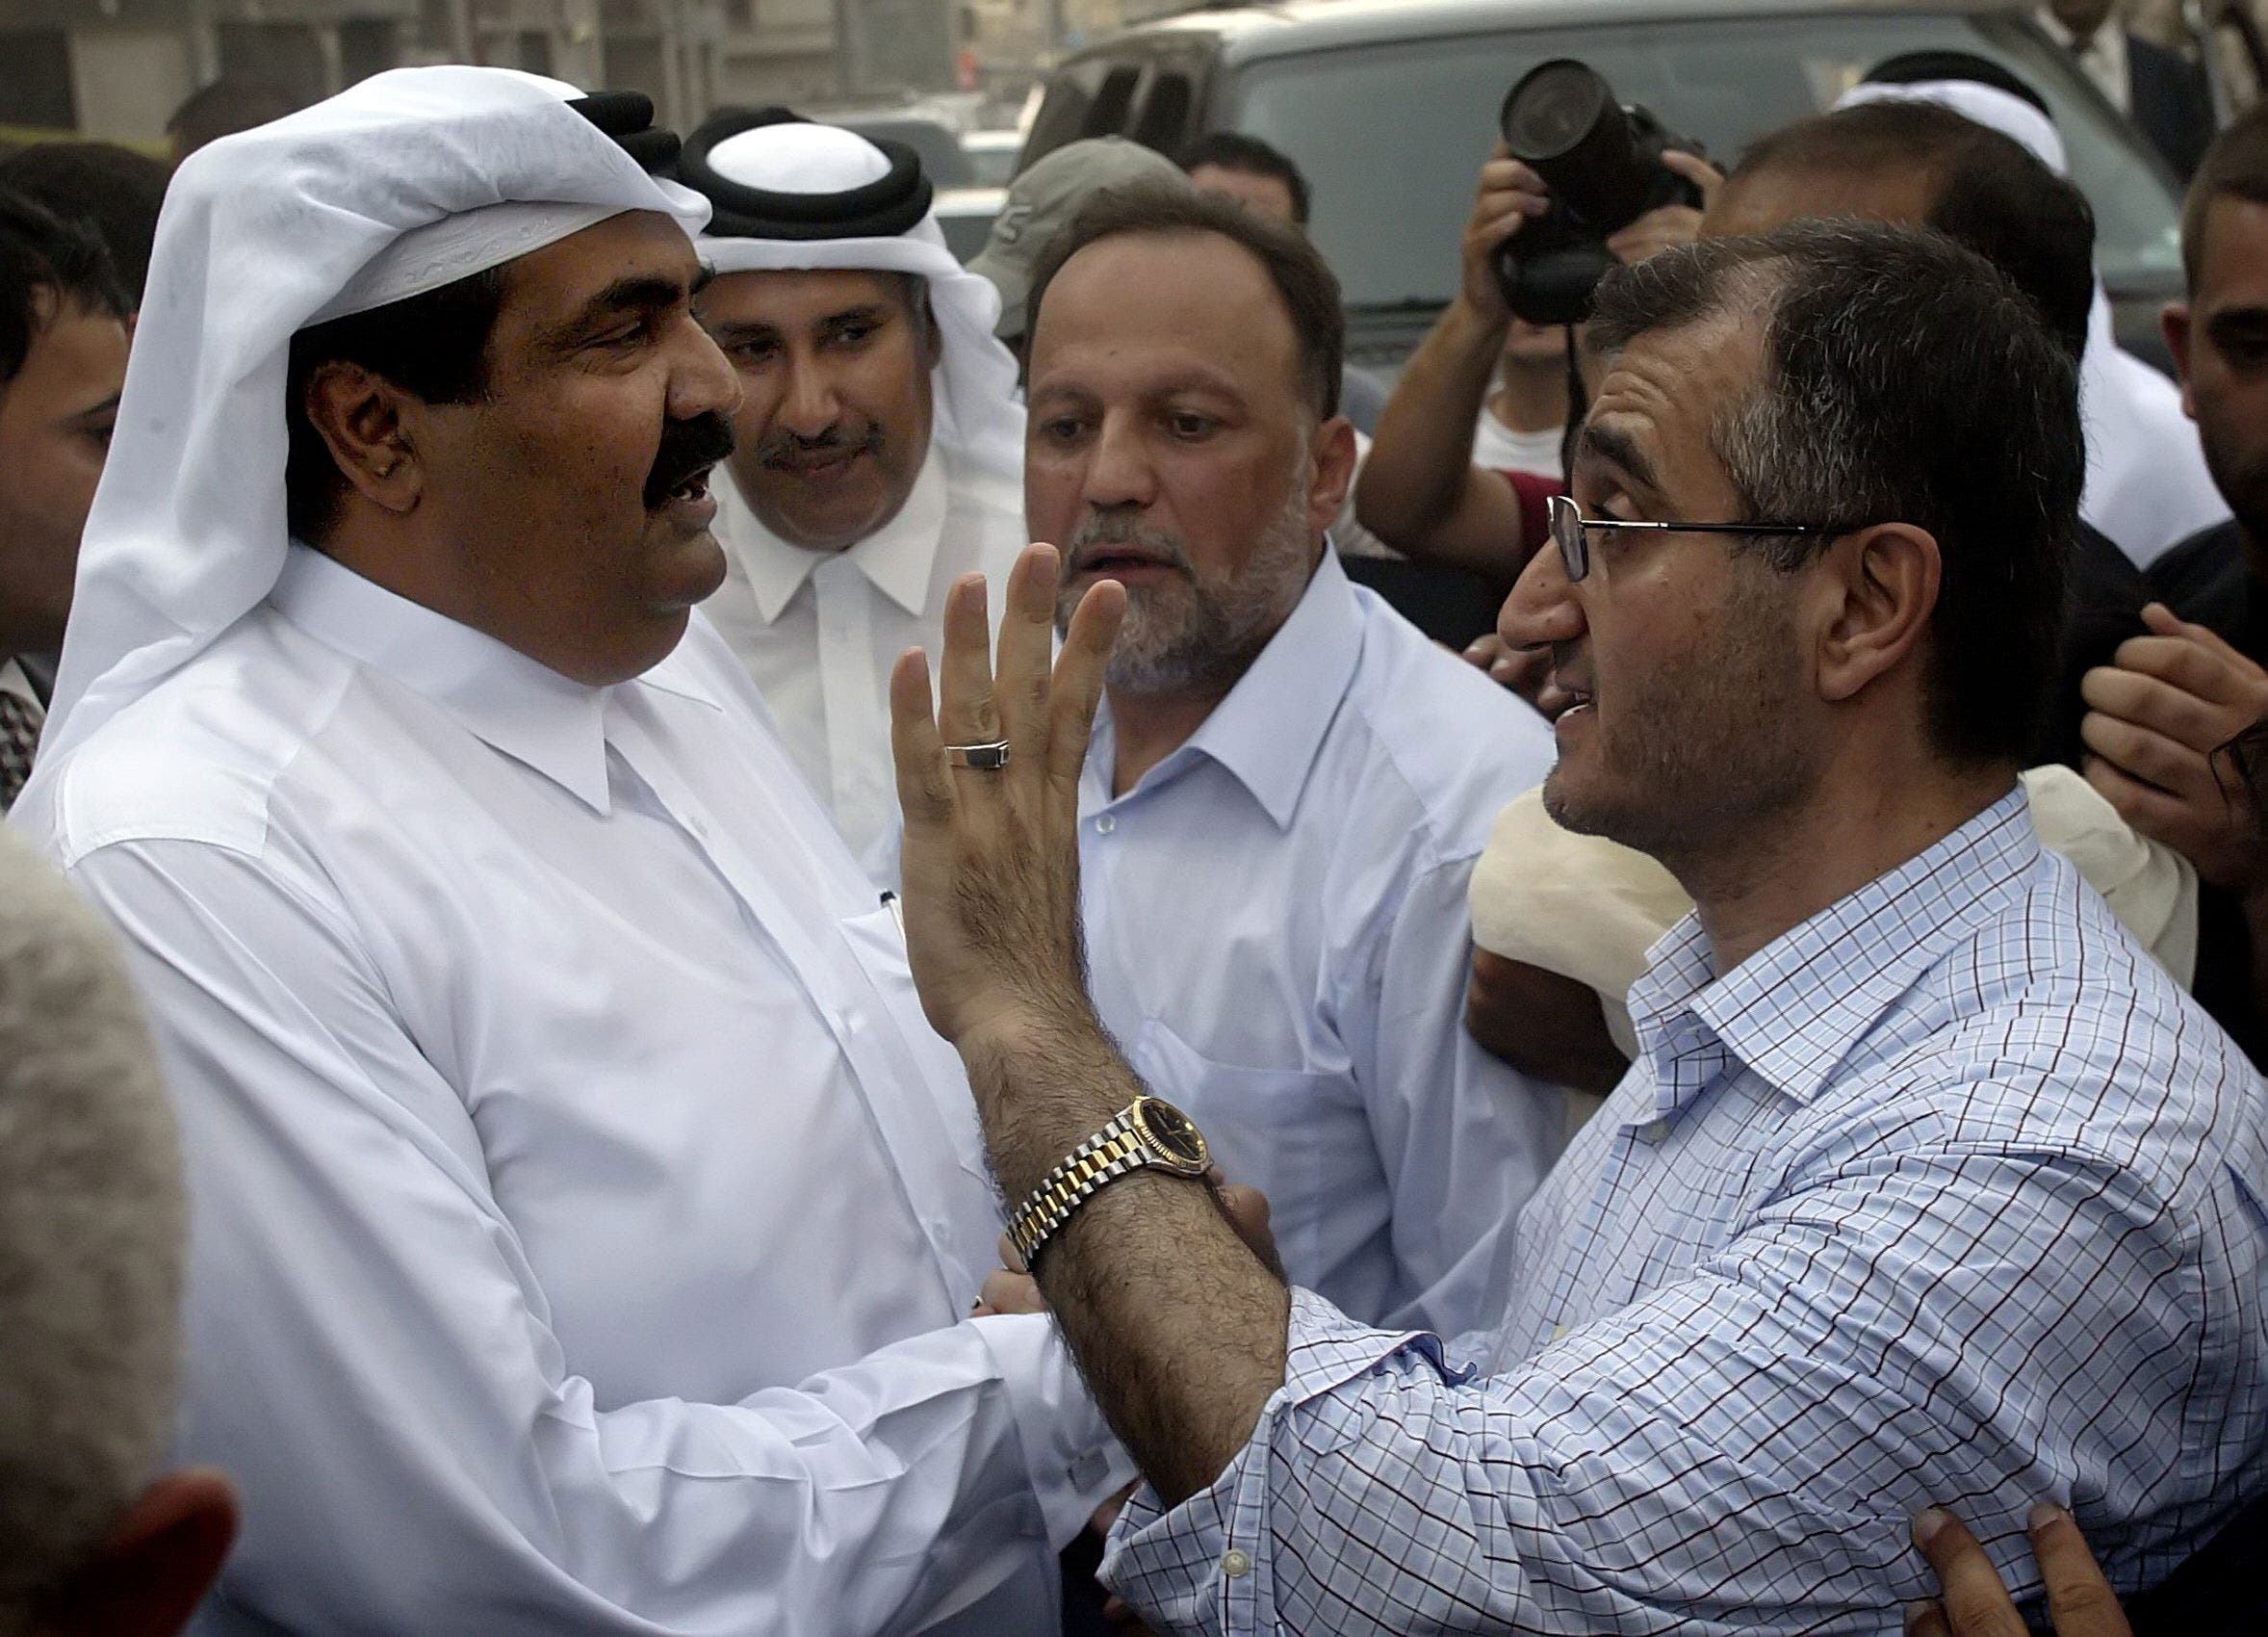 Hajj Hussein al-Khalil (R), political advisor of the Secretary General of pro-Iranian Hezbollah Hassan Nasrallah, gestures as he greet Emir of Qatar Sheikh Hamad bin Khalifa al-Thani, during his visit to the devastated Beirut southern suburb to inspect the neighborhood, 21 August 2006 that was almost destroyed in 34 days of bloody war between Israel and Hezbollah militants